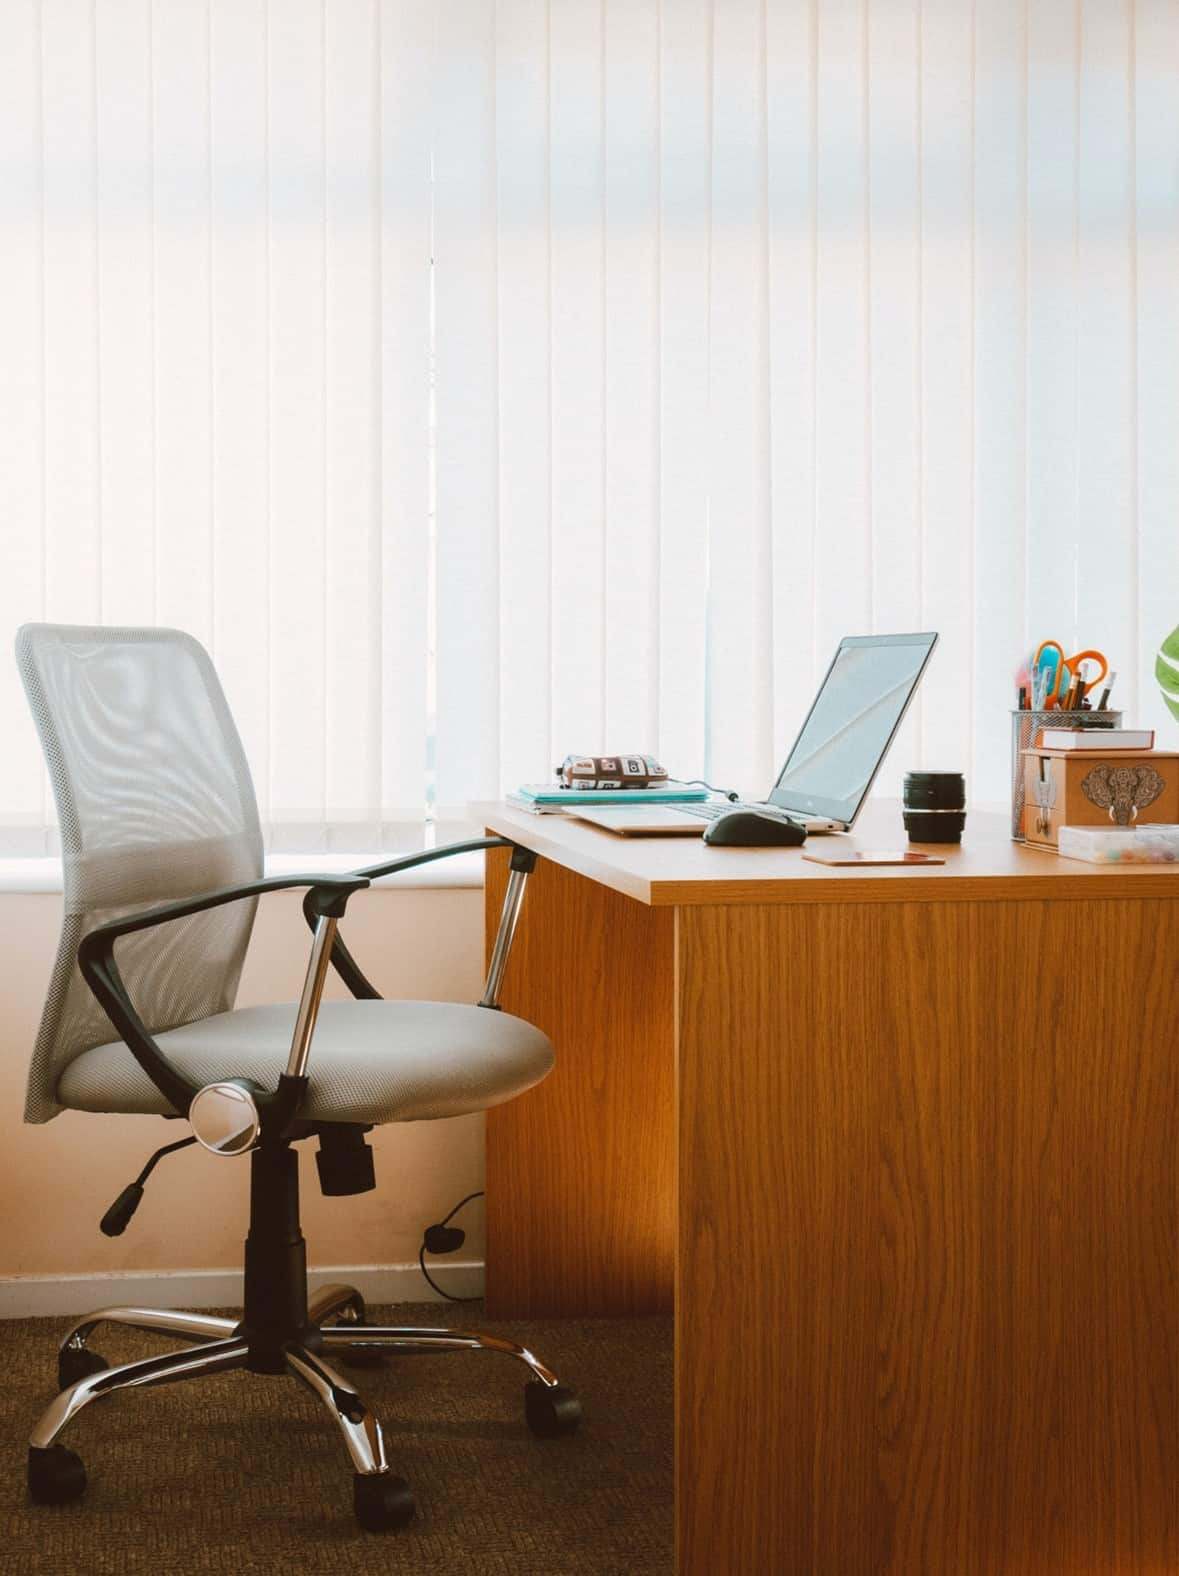 Benefits of Selling Your Used Office Furniture